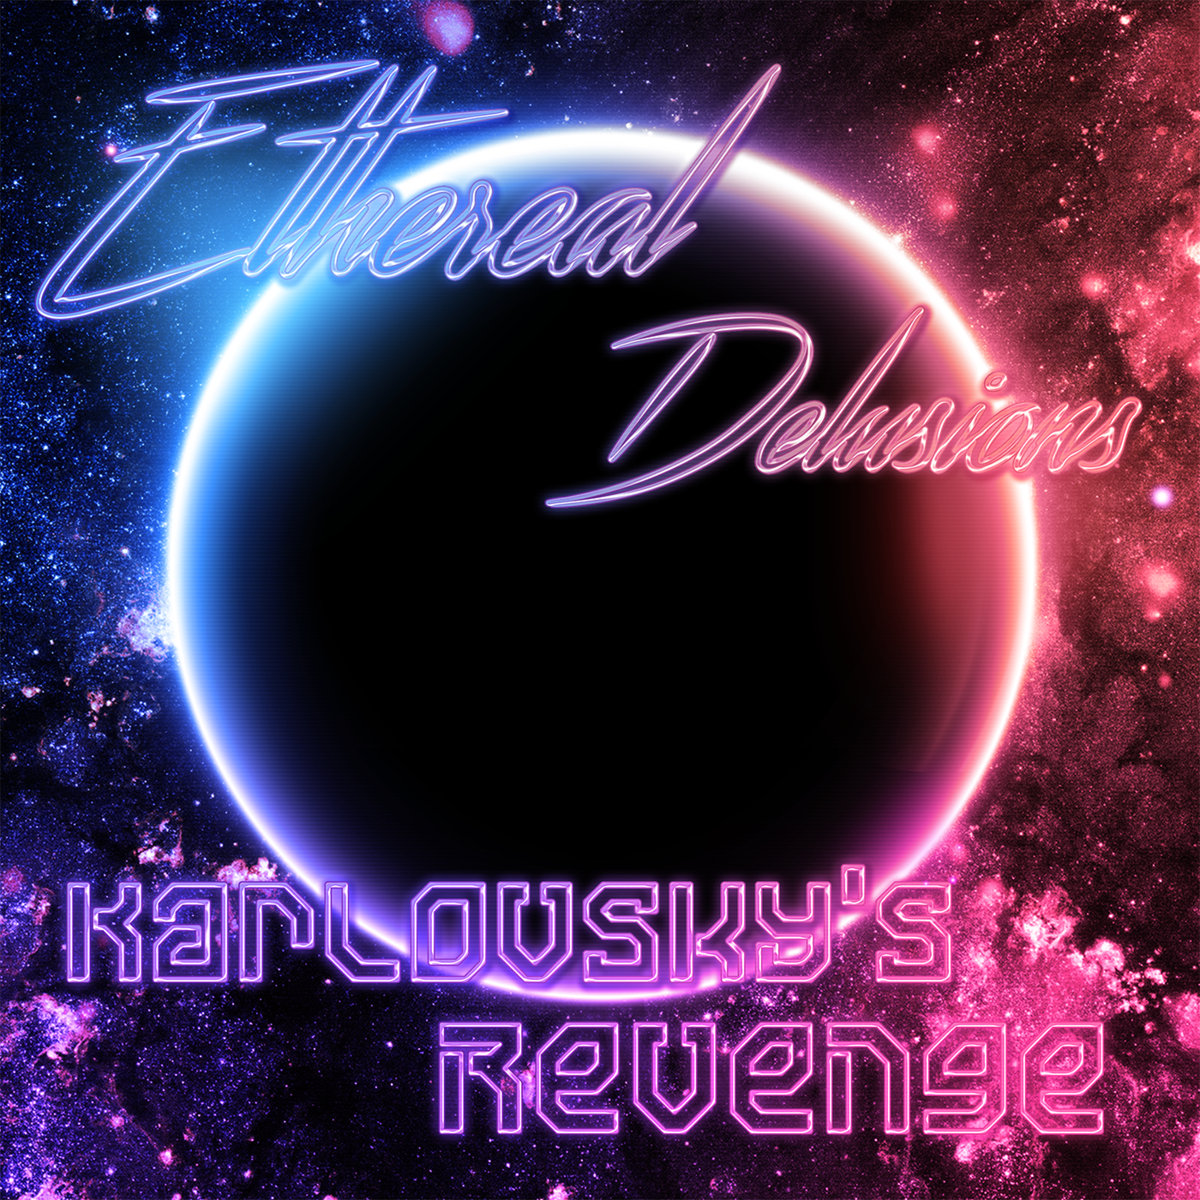 Ethereal DelusionsKarlovsky's Revenge-Ethereal Delusions-Art